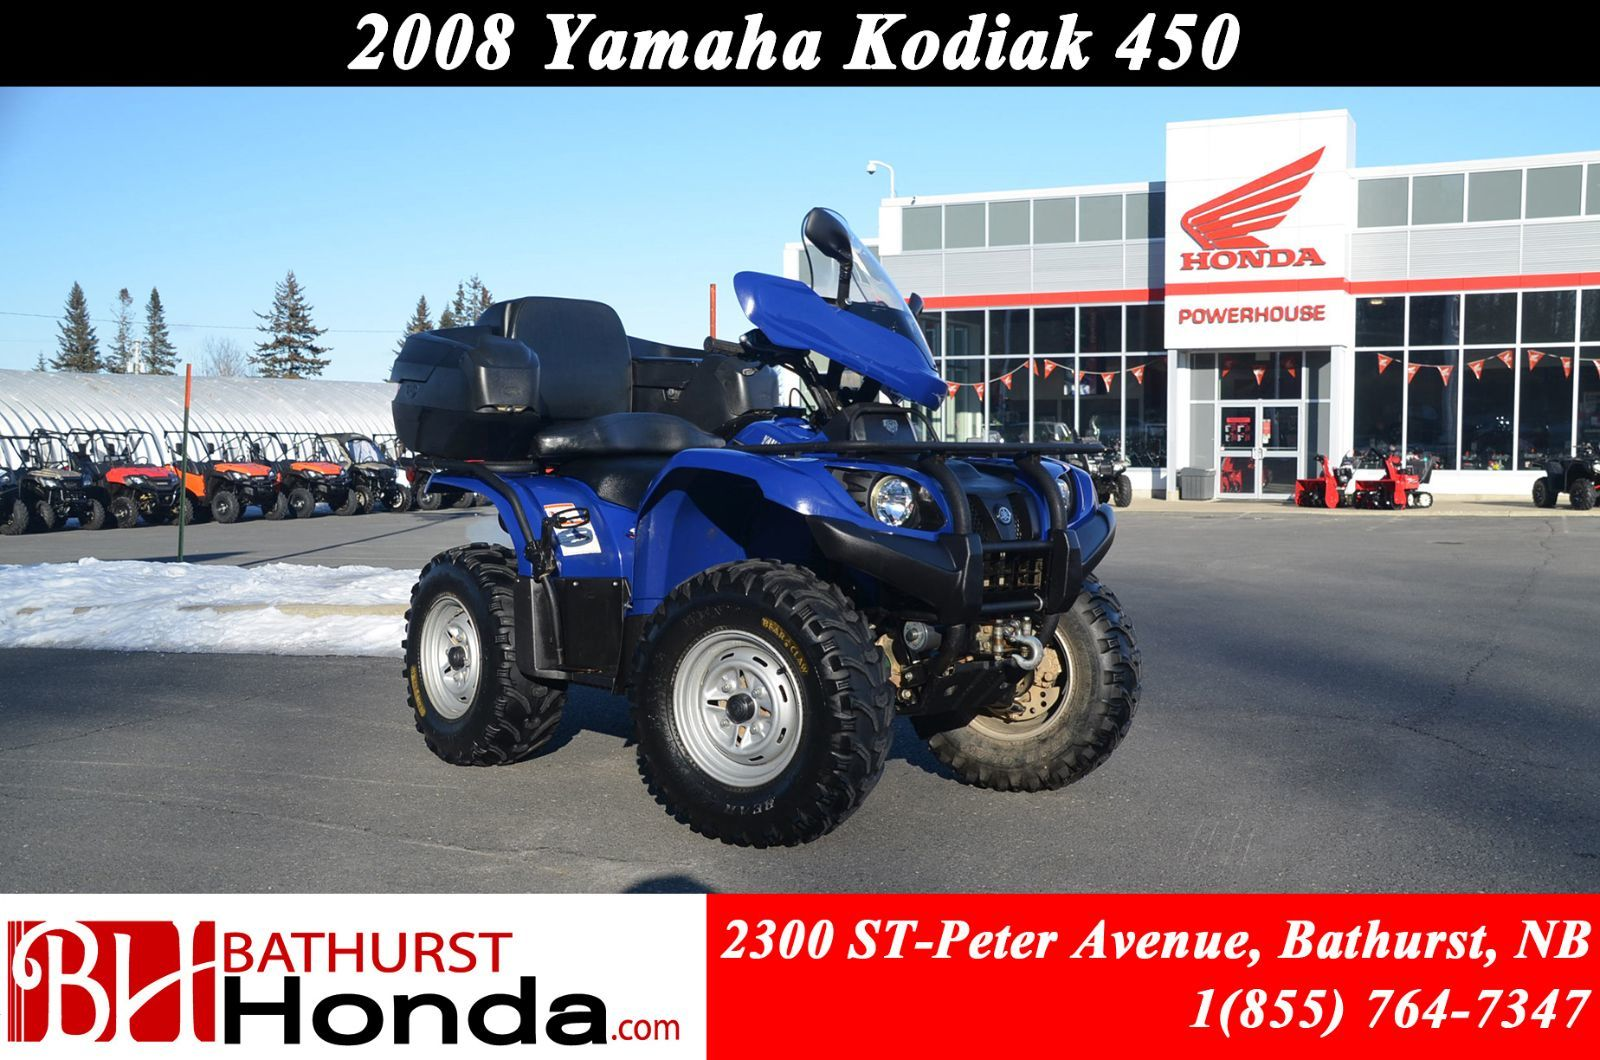 Used 2008 Yamaha Kodiak 450 Independant Rear Suspension On Command Winch Wiring Diagram 4wd In Bathurst Inventory Honda New Brunswick